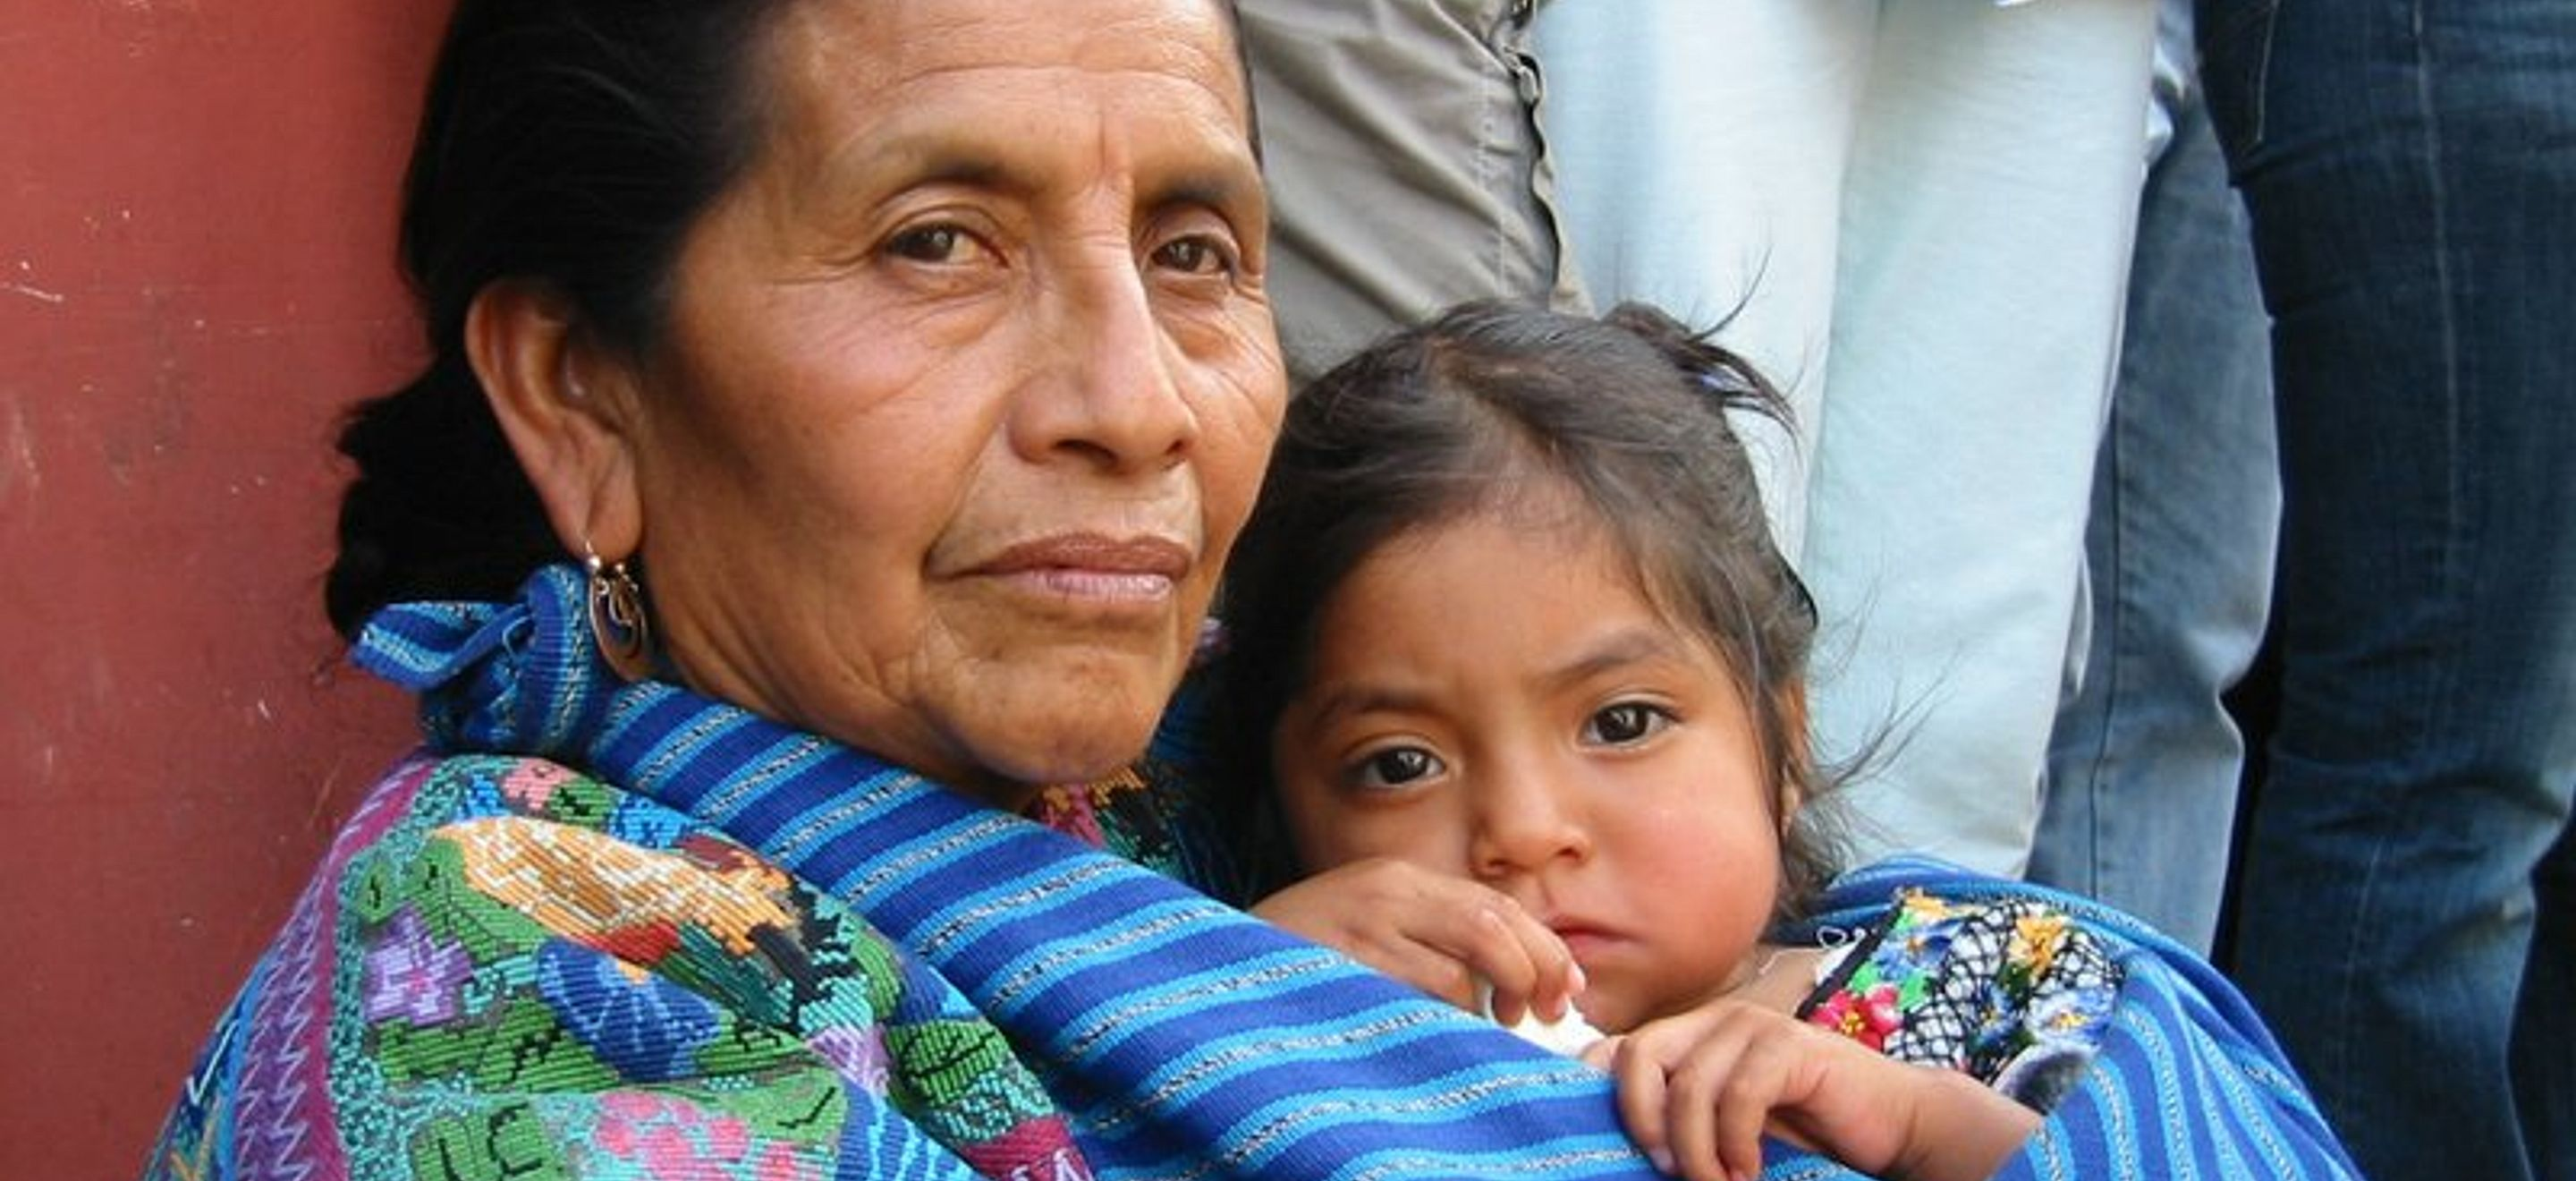 An indigenous Central American woman wearing colorful embroidery has a young girl wrapped to her in embroidered cloth.